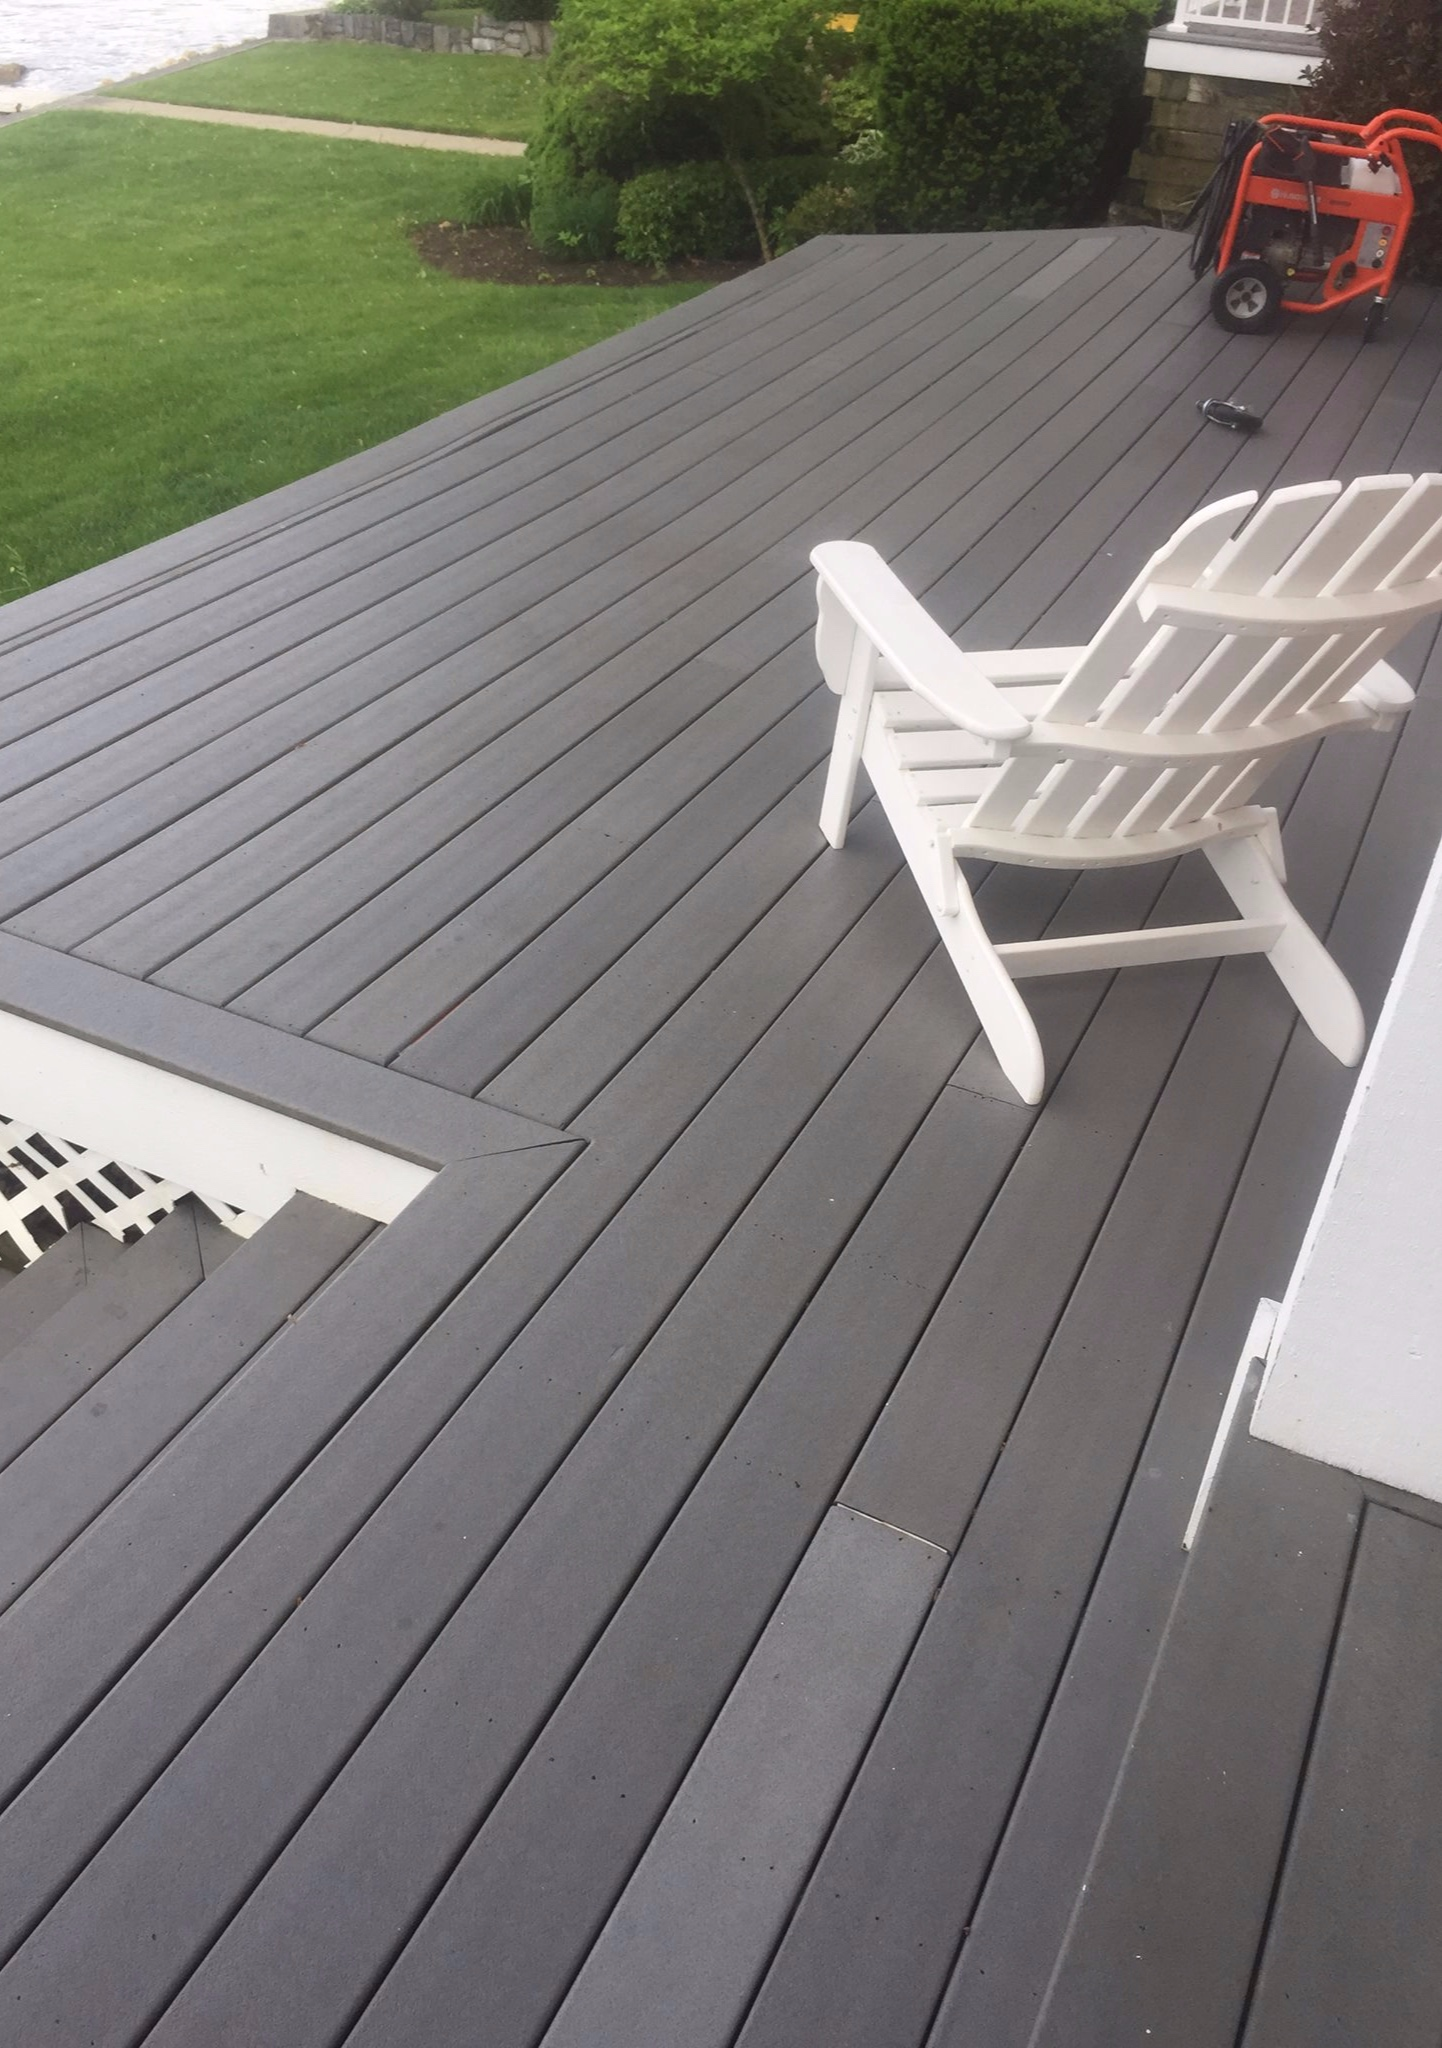 Power Washing - Hyred workers are skilled with over 4 years of experience